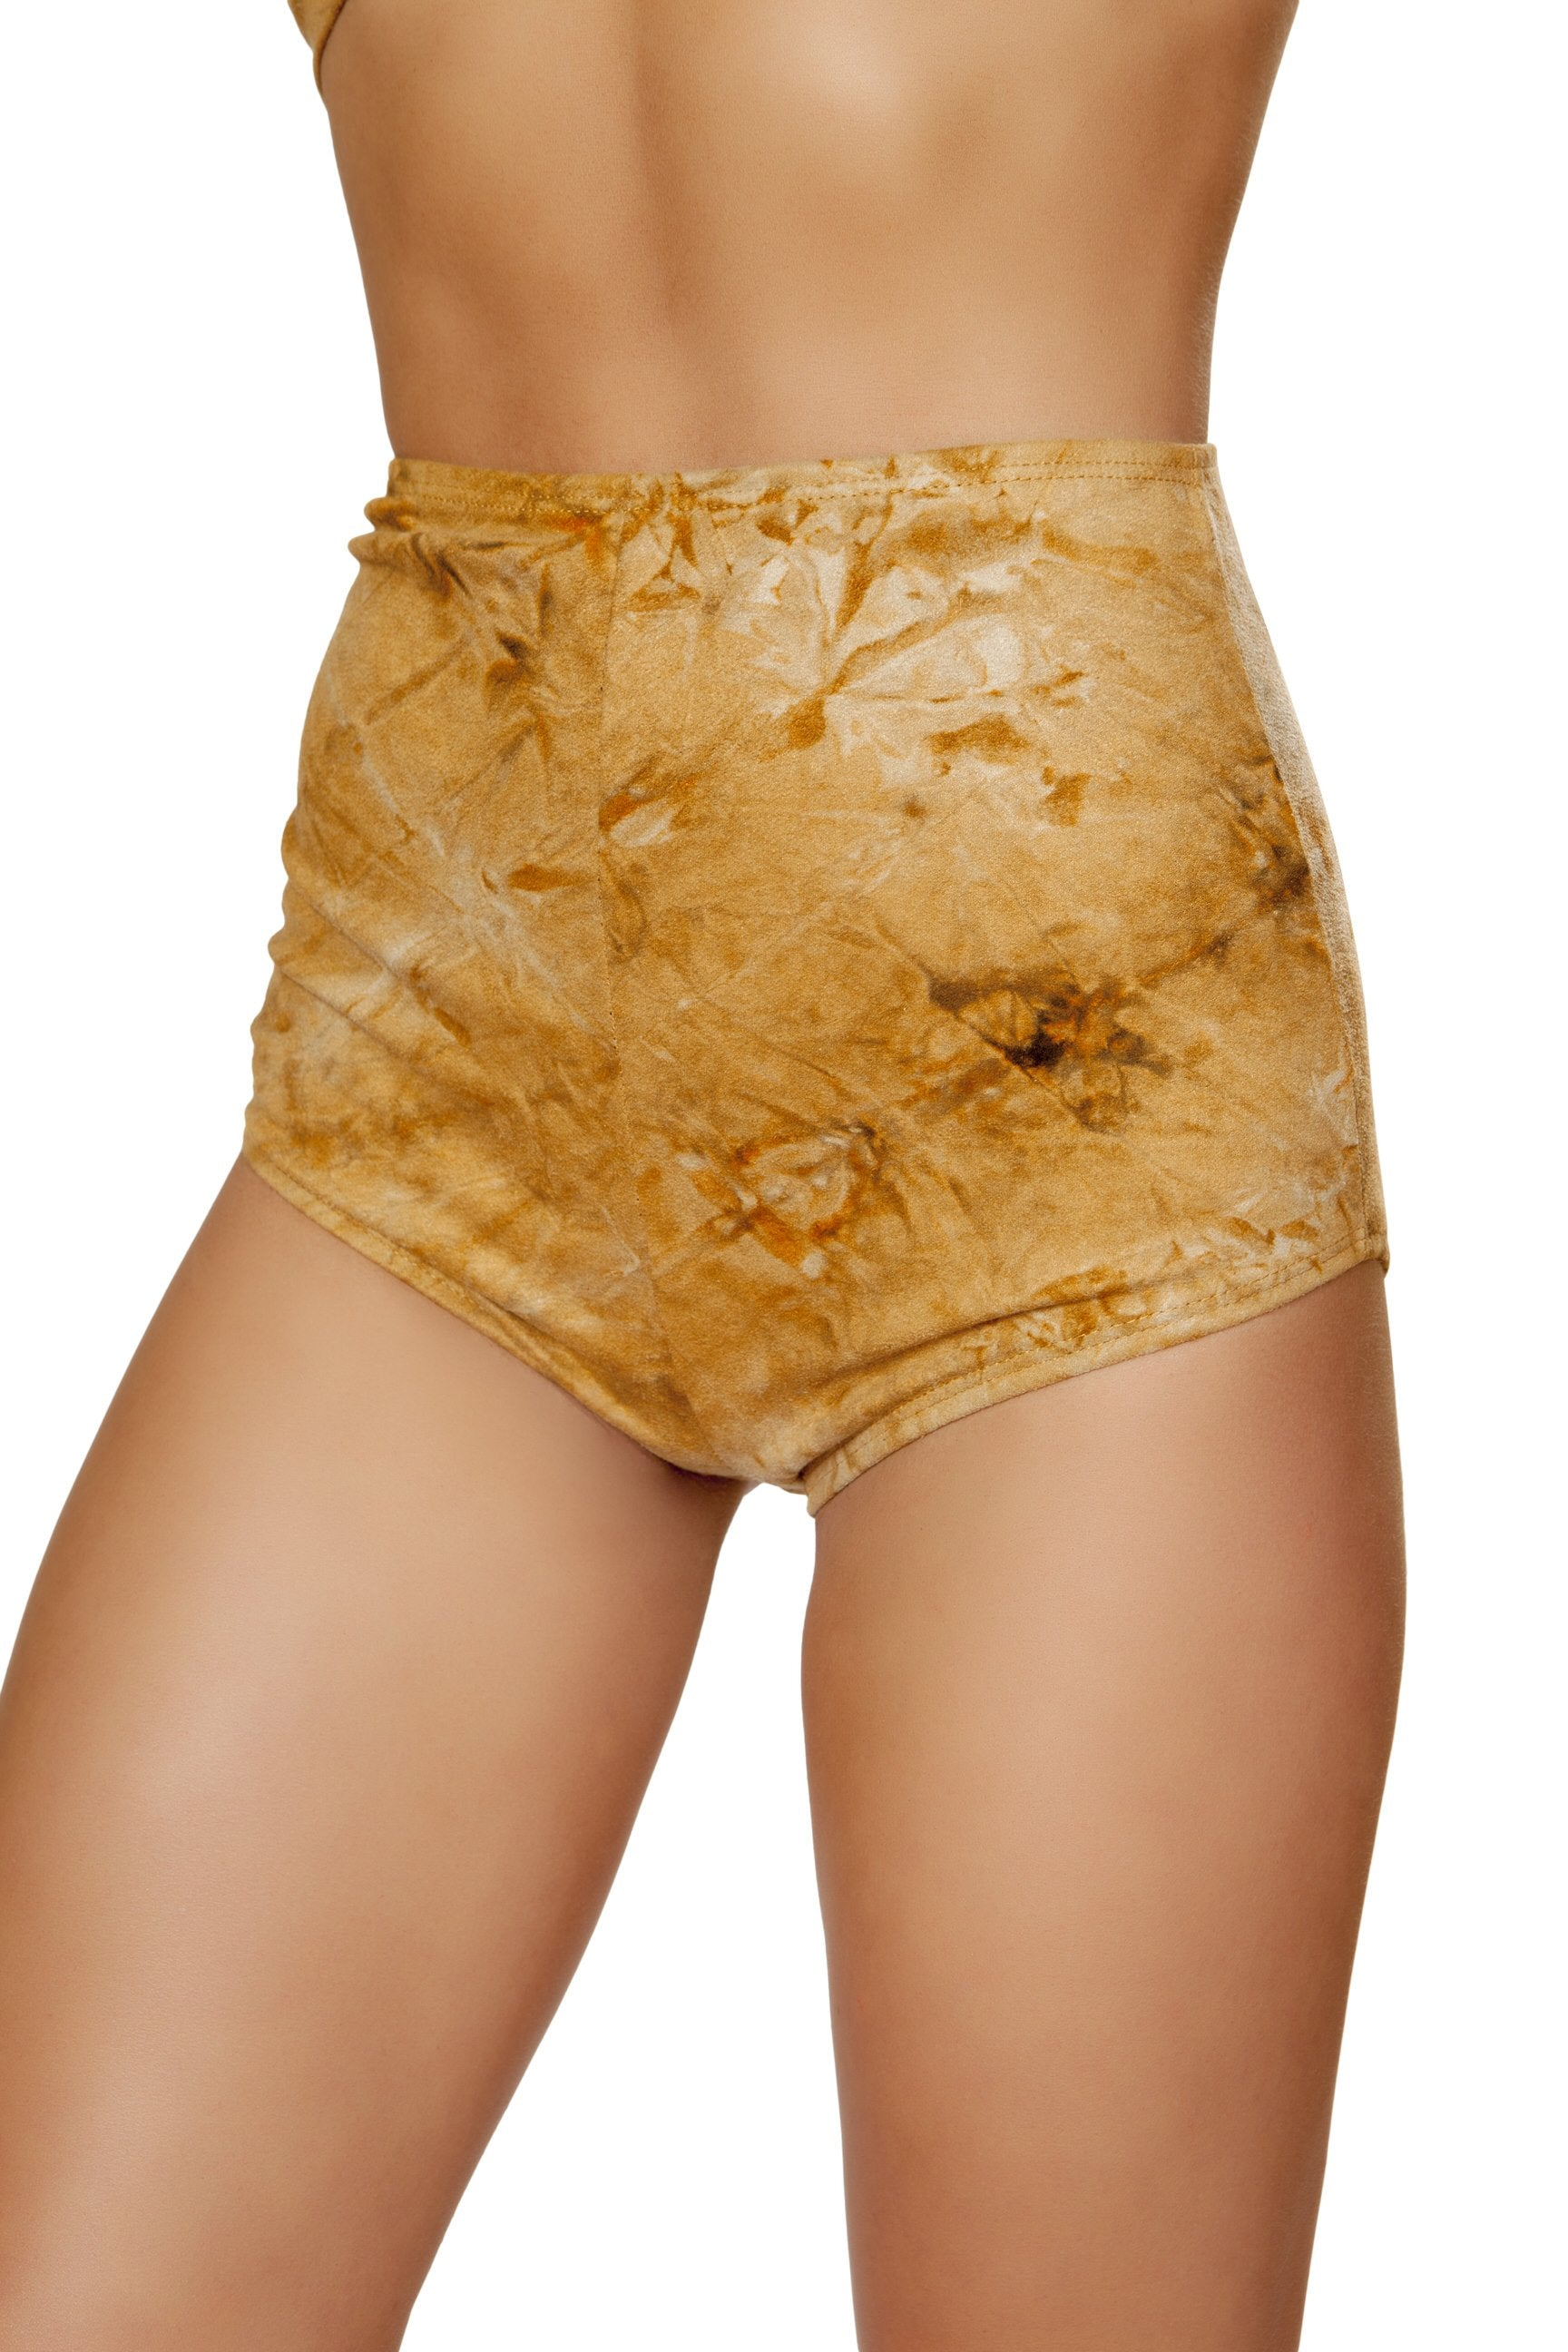 3586 - 1pc Brown Tie Dye Suede High-Waisted Shorts - pink-ritual